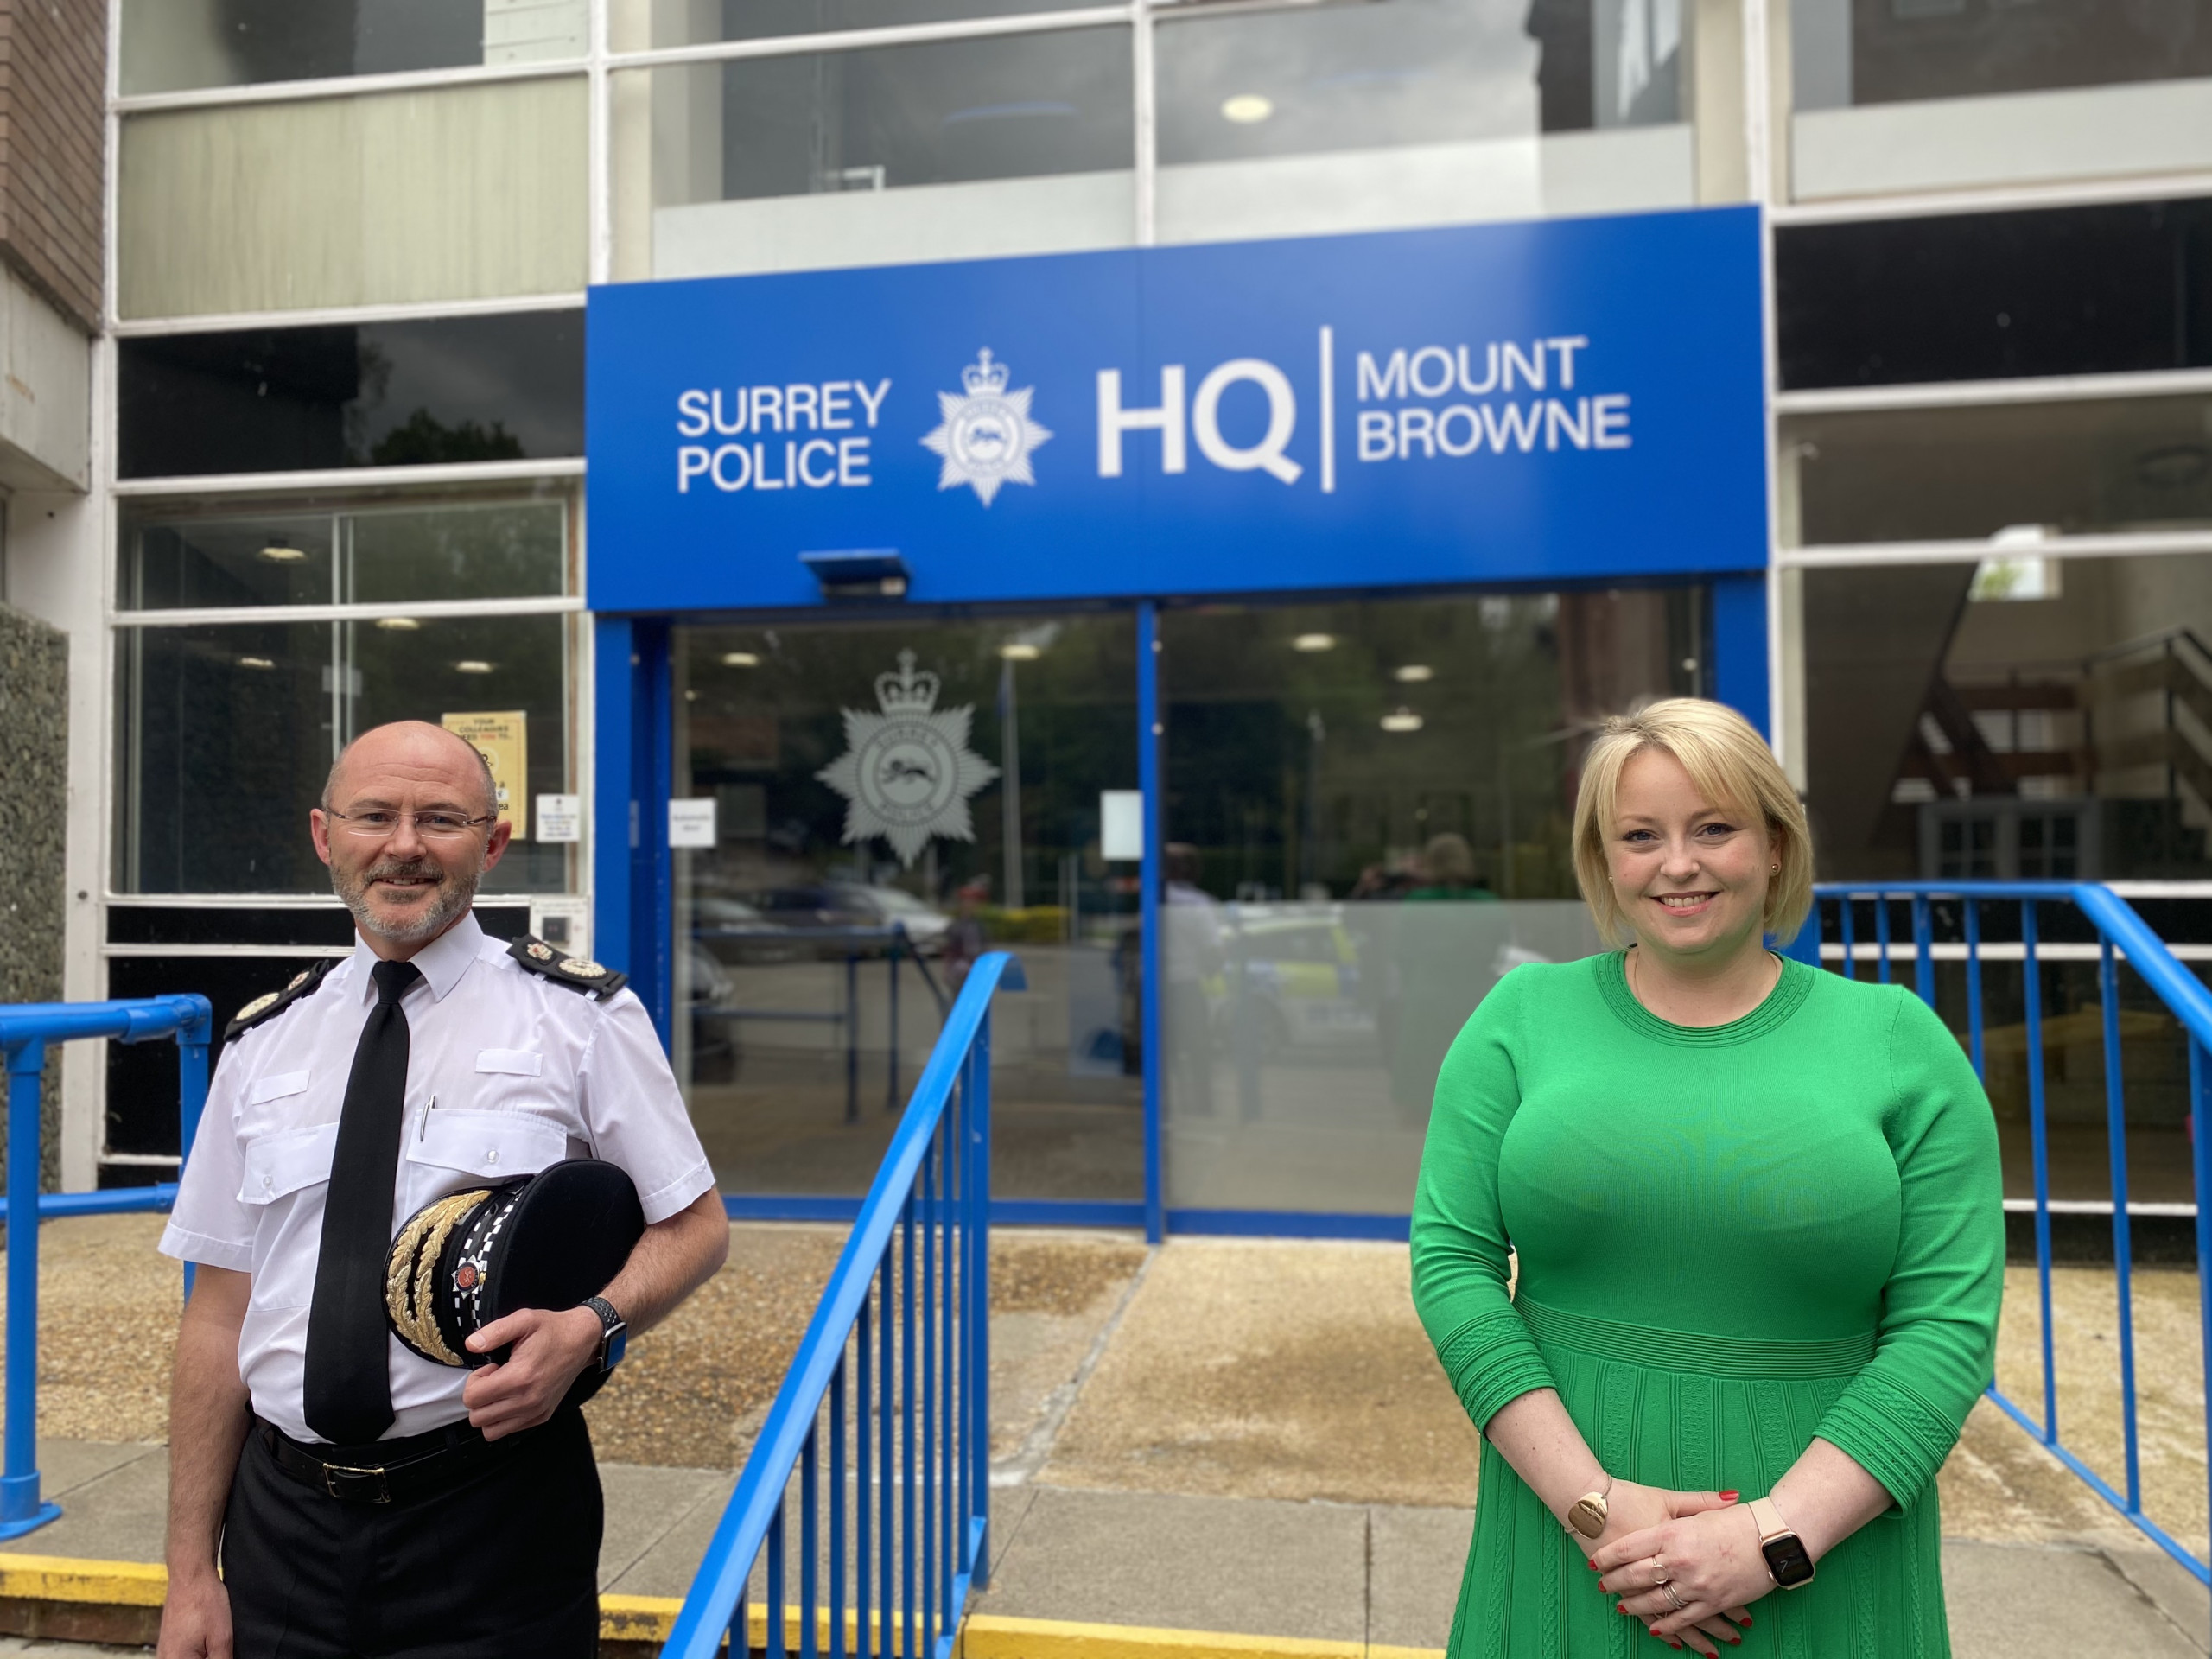 """""""Residents' views will be at the heart of my policing plans"""" – new PCC Lisa Townsend takes up office following election win"""